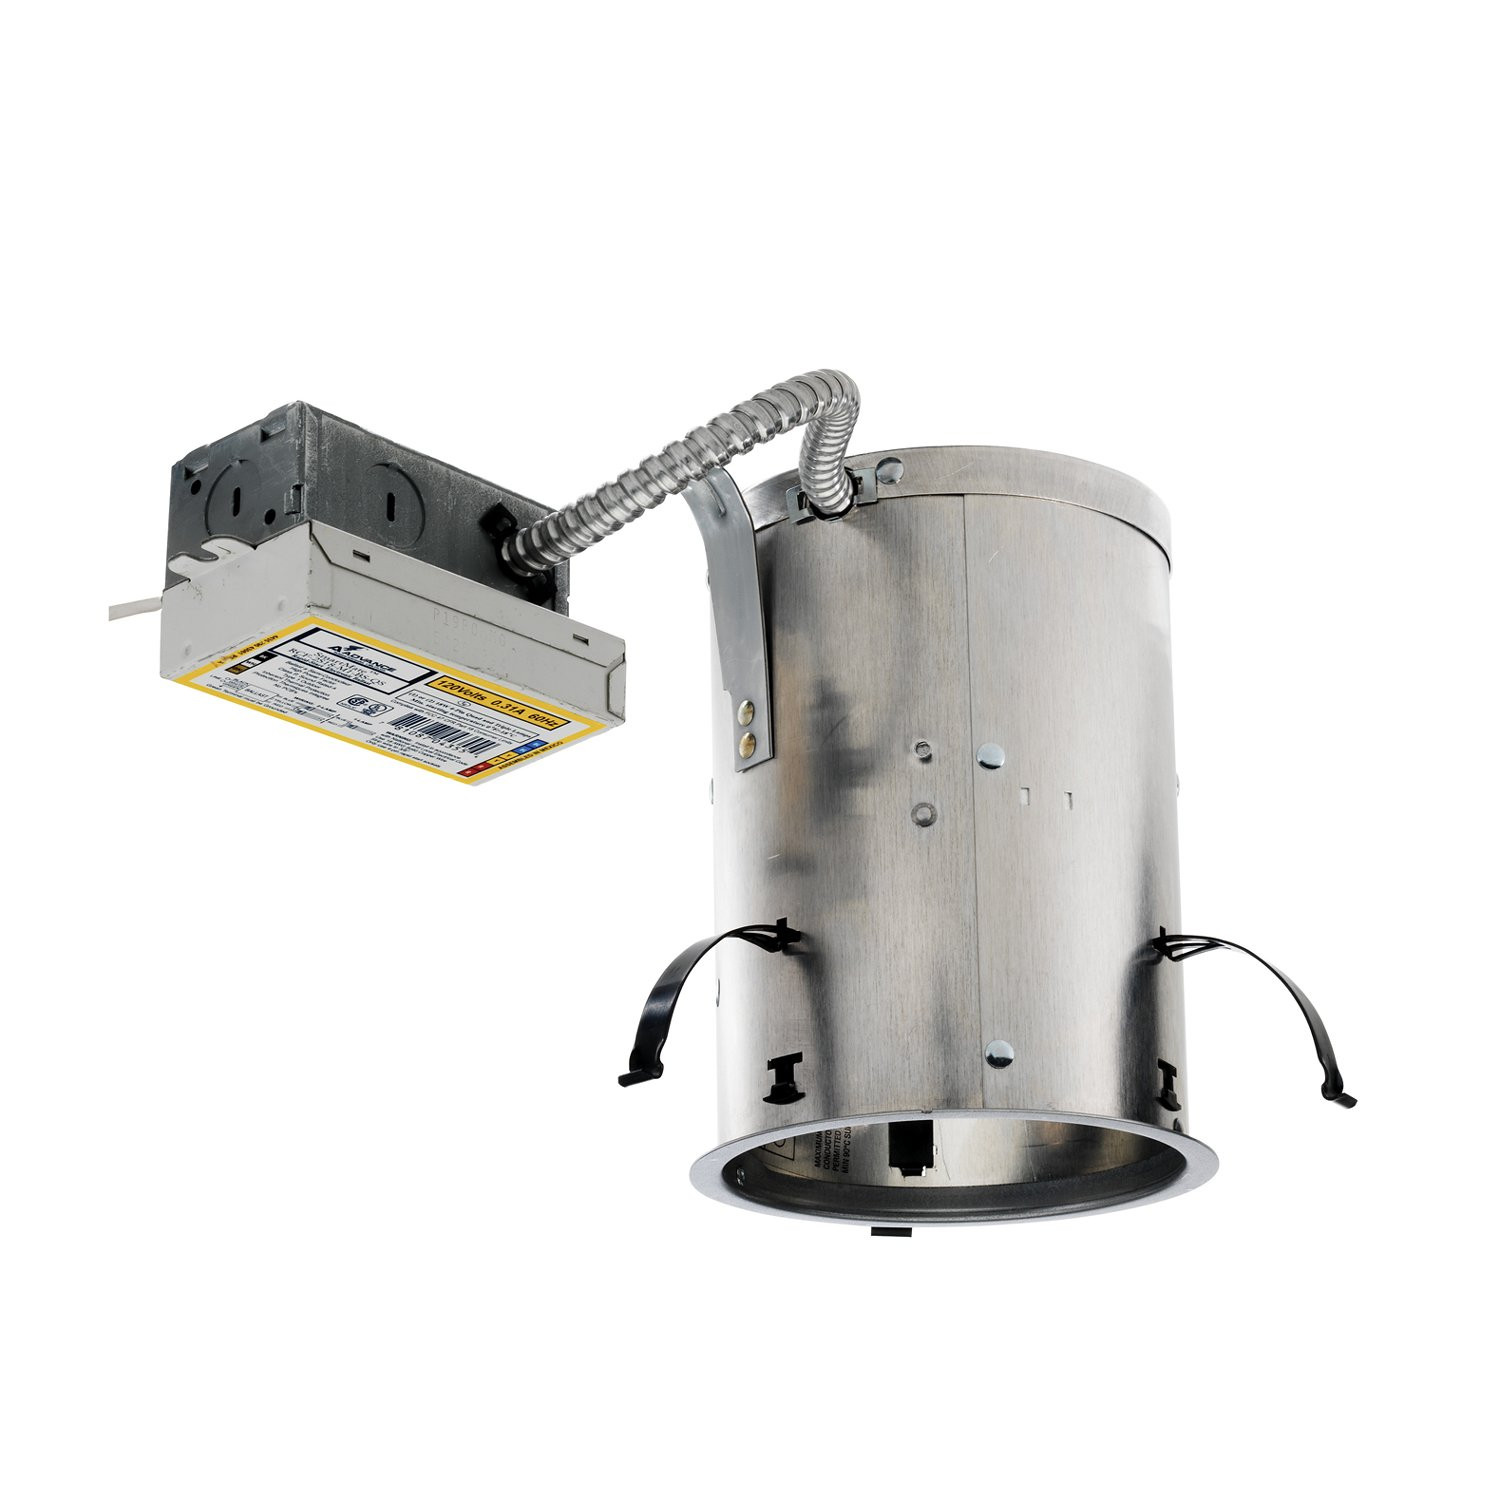 Best ideas about Juno Recessed Lighting . Save or Pin Juno Lighting Group ICPL518RE 5 in Watt Fluorescent Now.